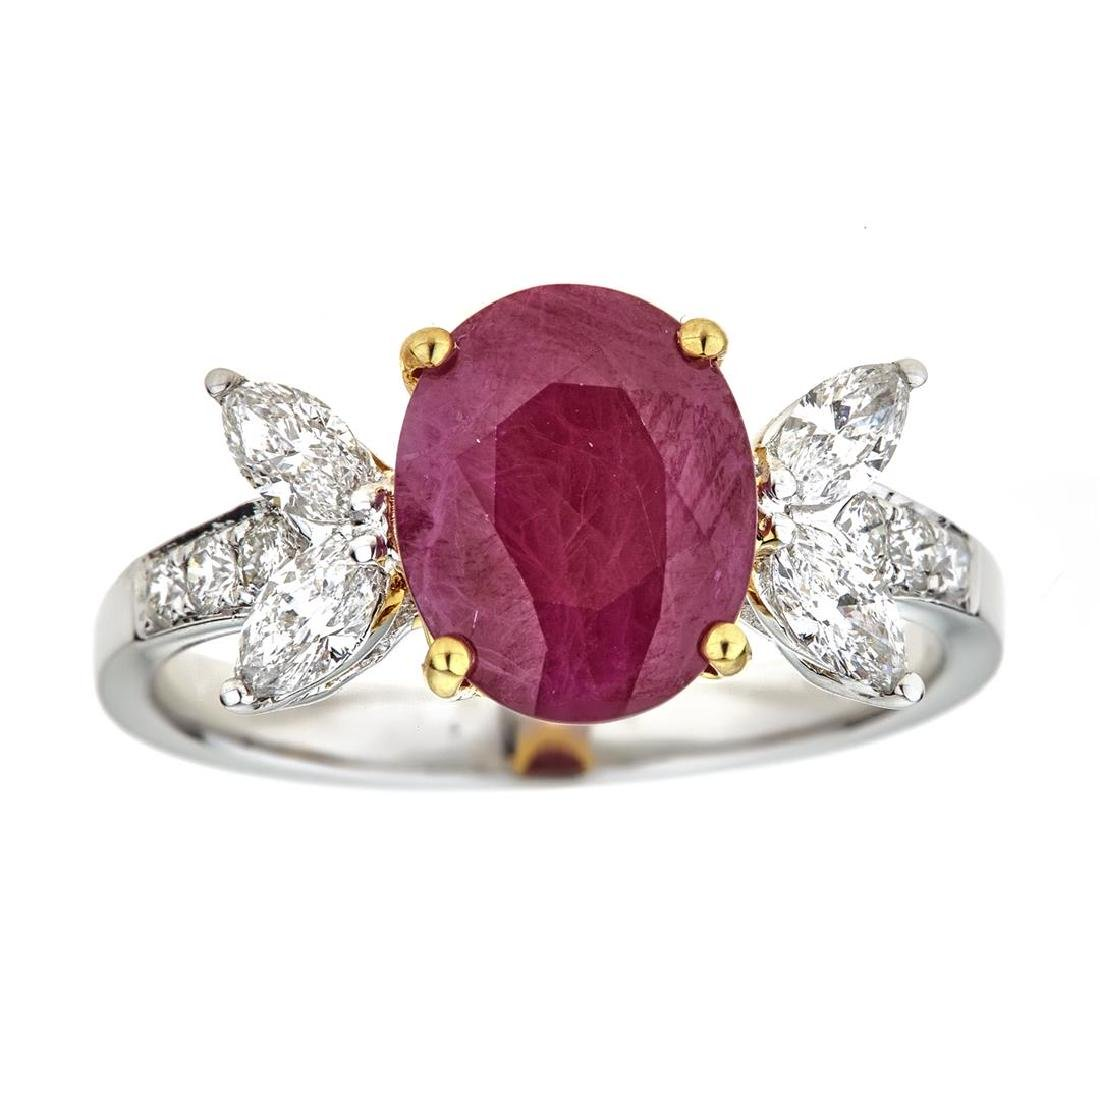 2.34 ctw Ruby and Diamond Ring - 18KT White and Yellow